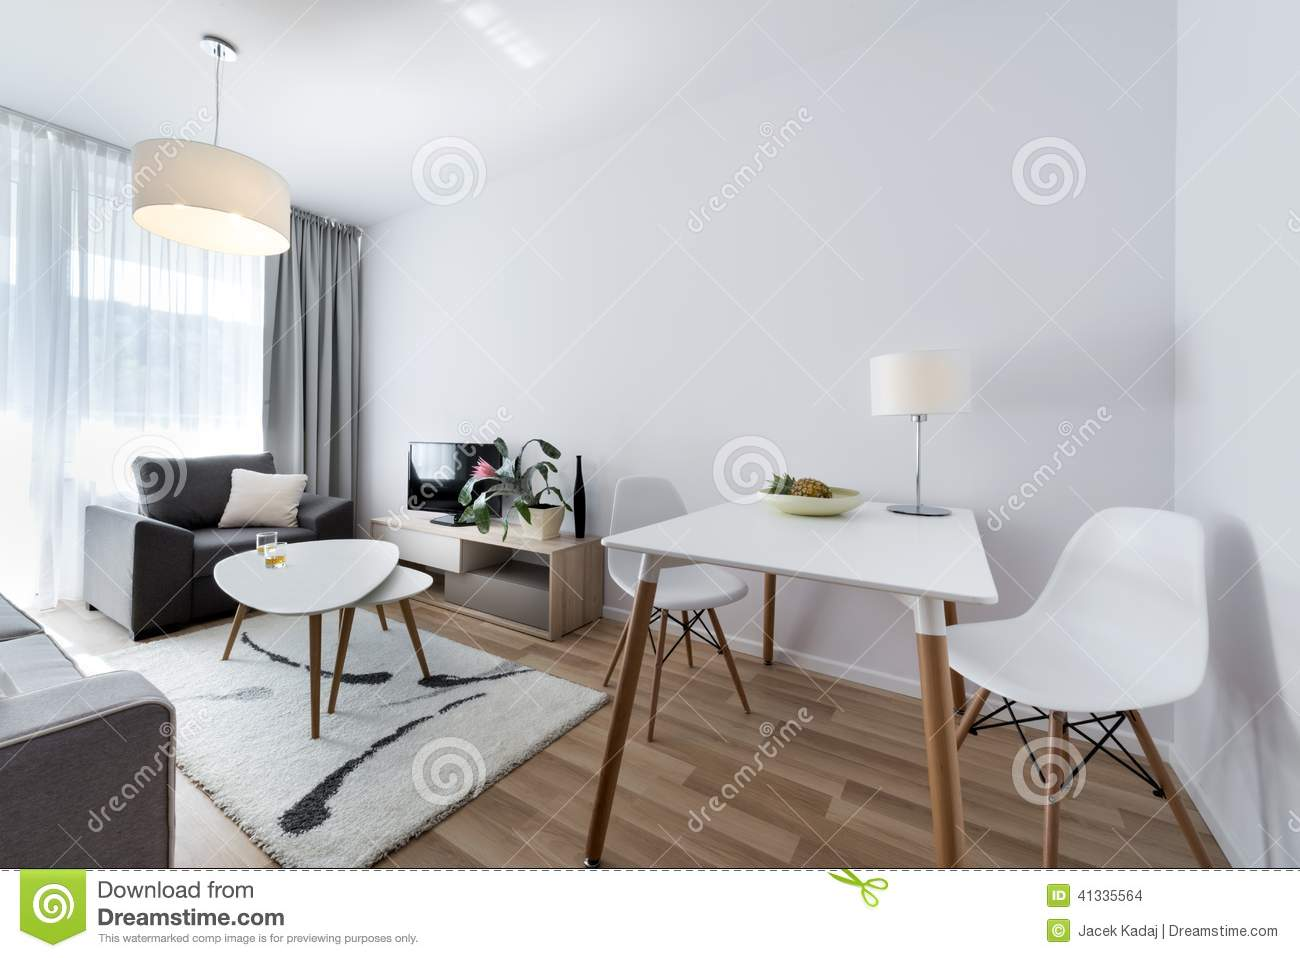 Modern interior design room in scandinavian style stock photo image 41335564 - Style scandinave ikea ...